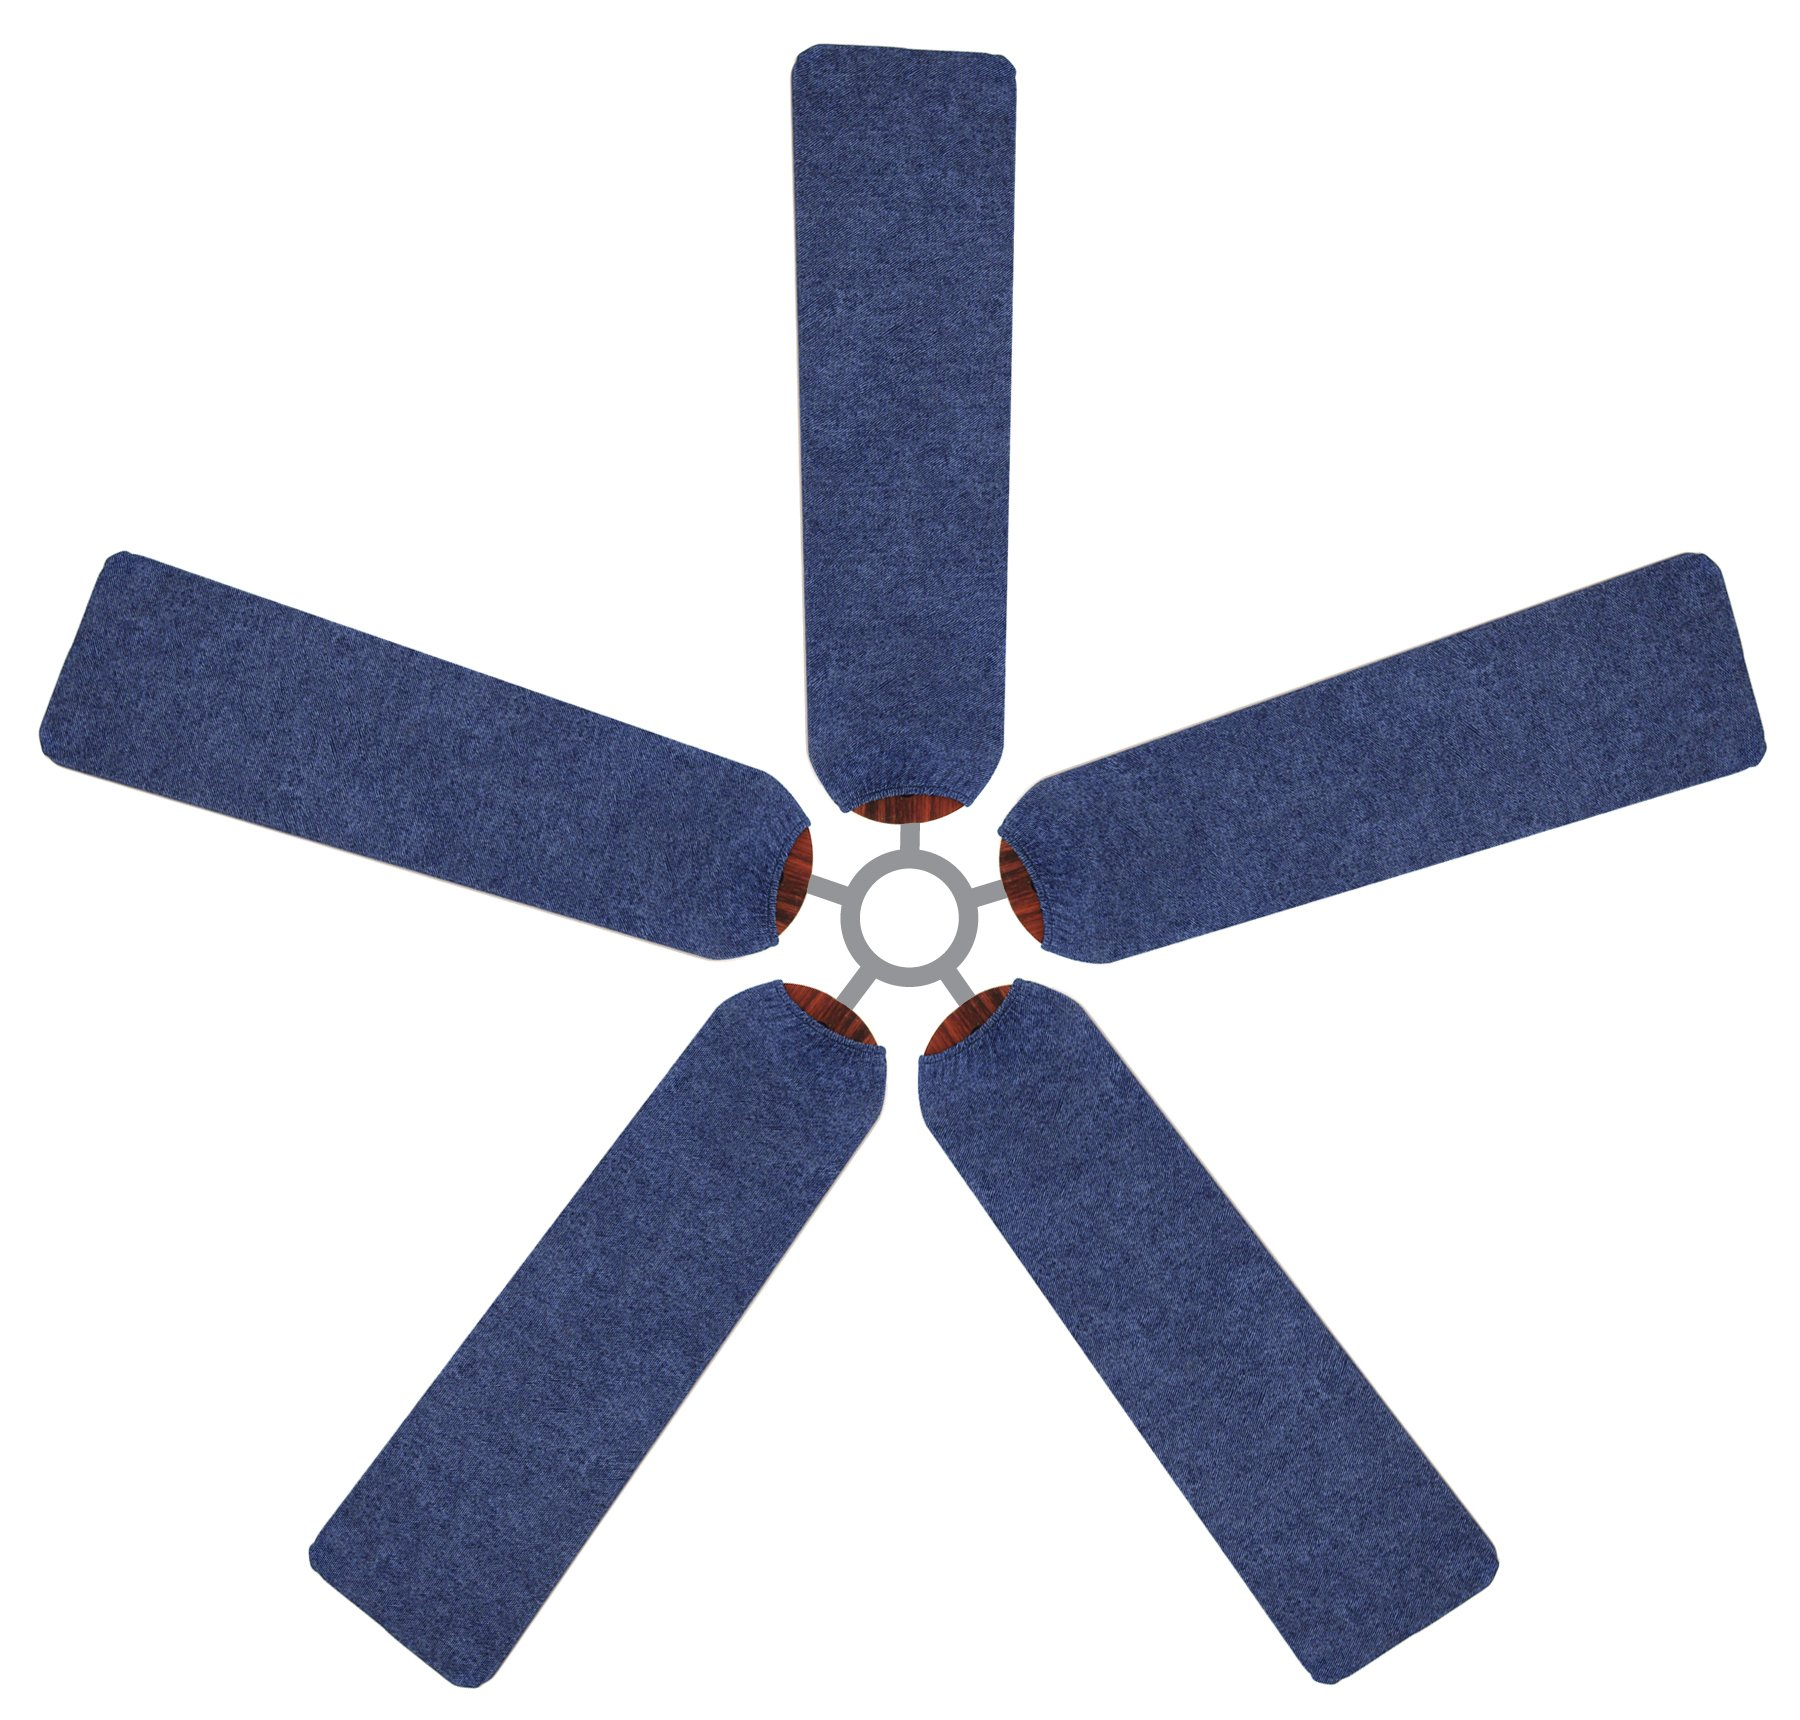 Fan Blade Designs Denim Ceiling Fan Blade Covers